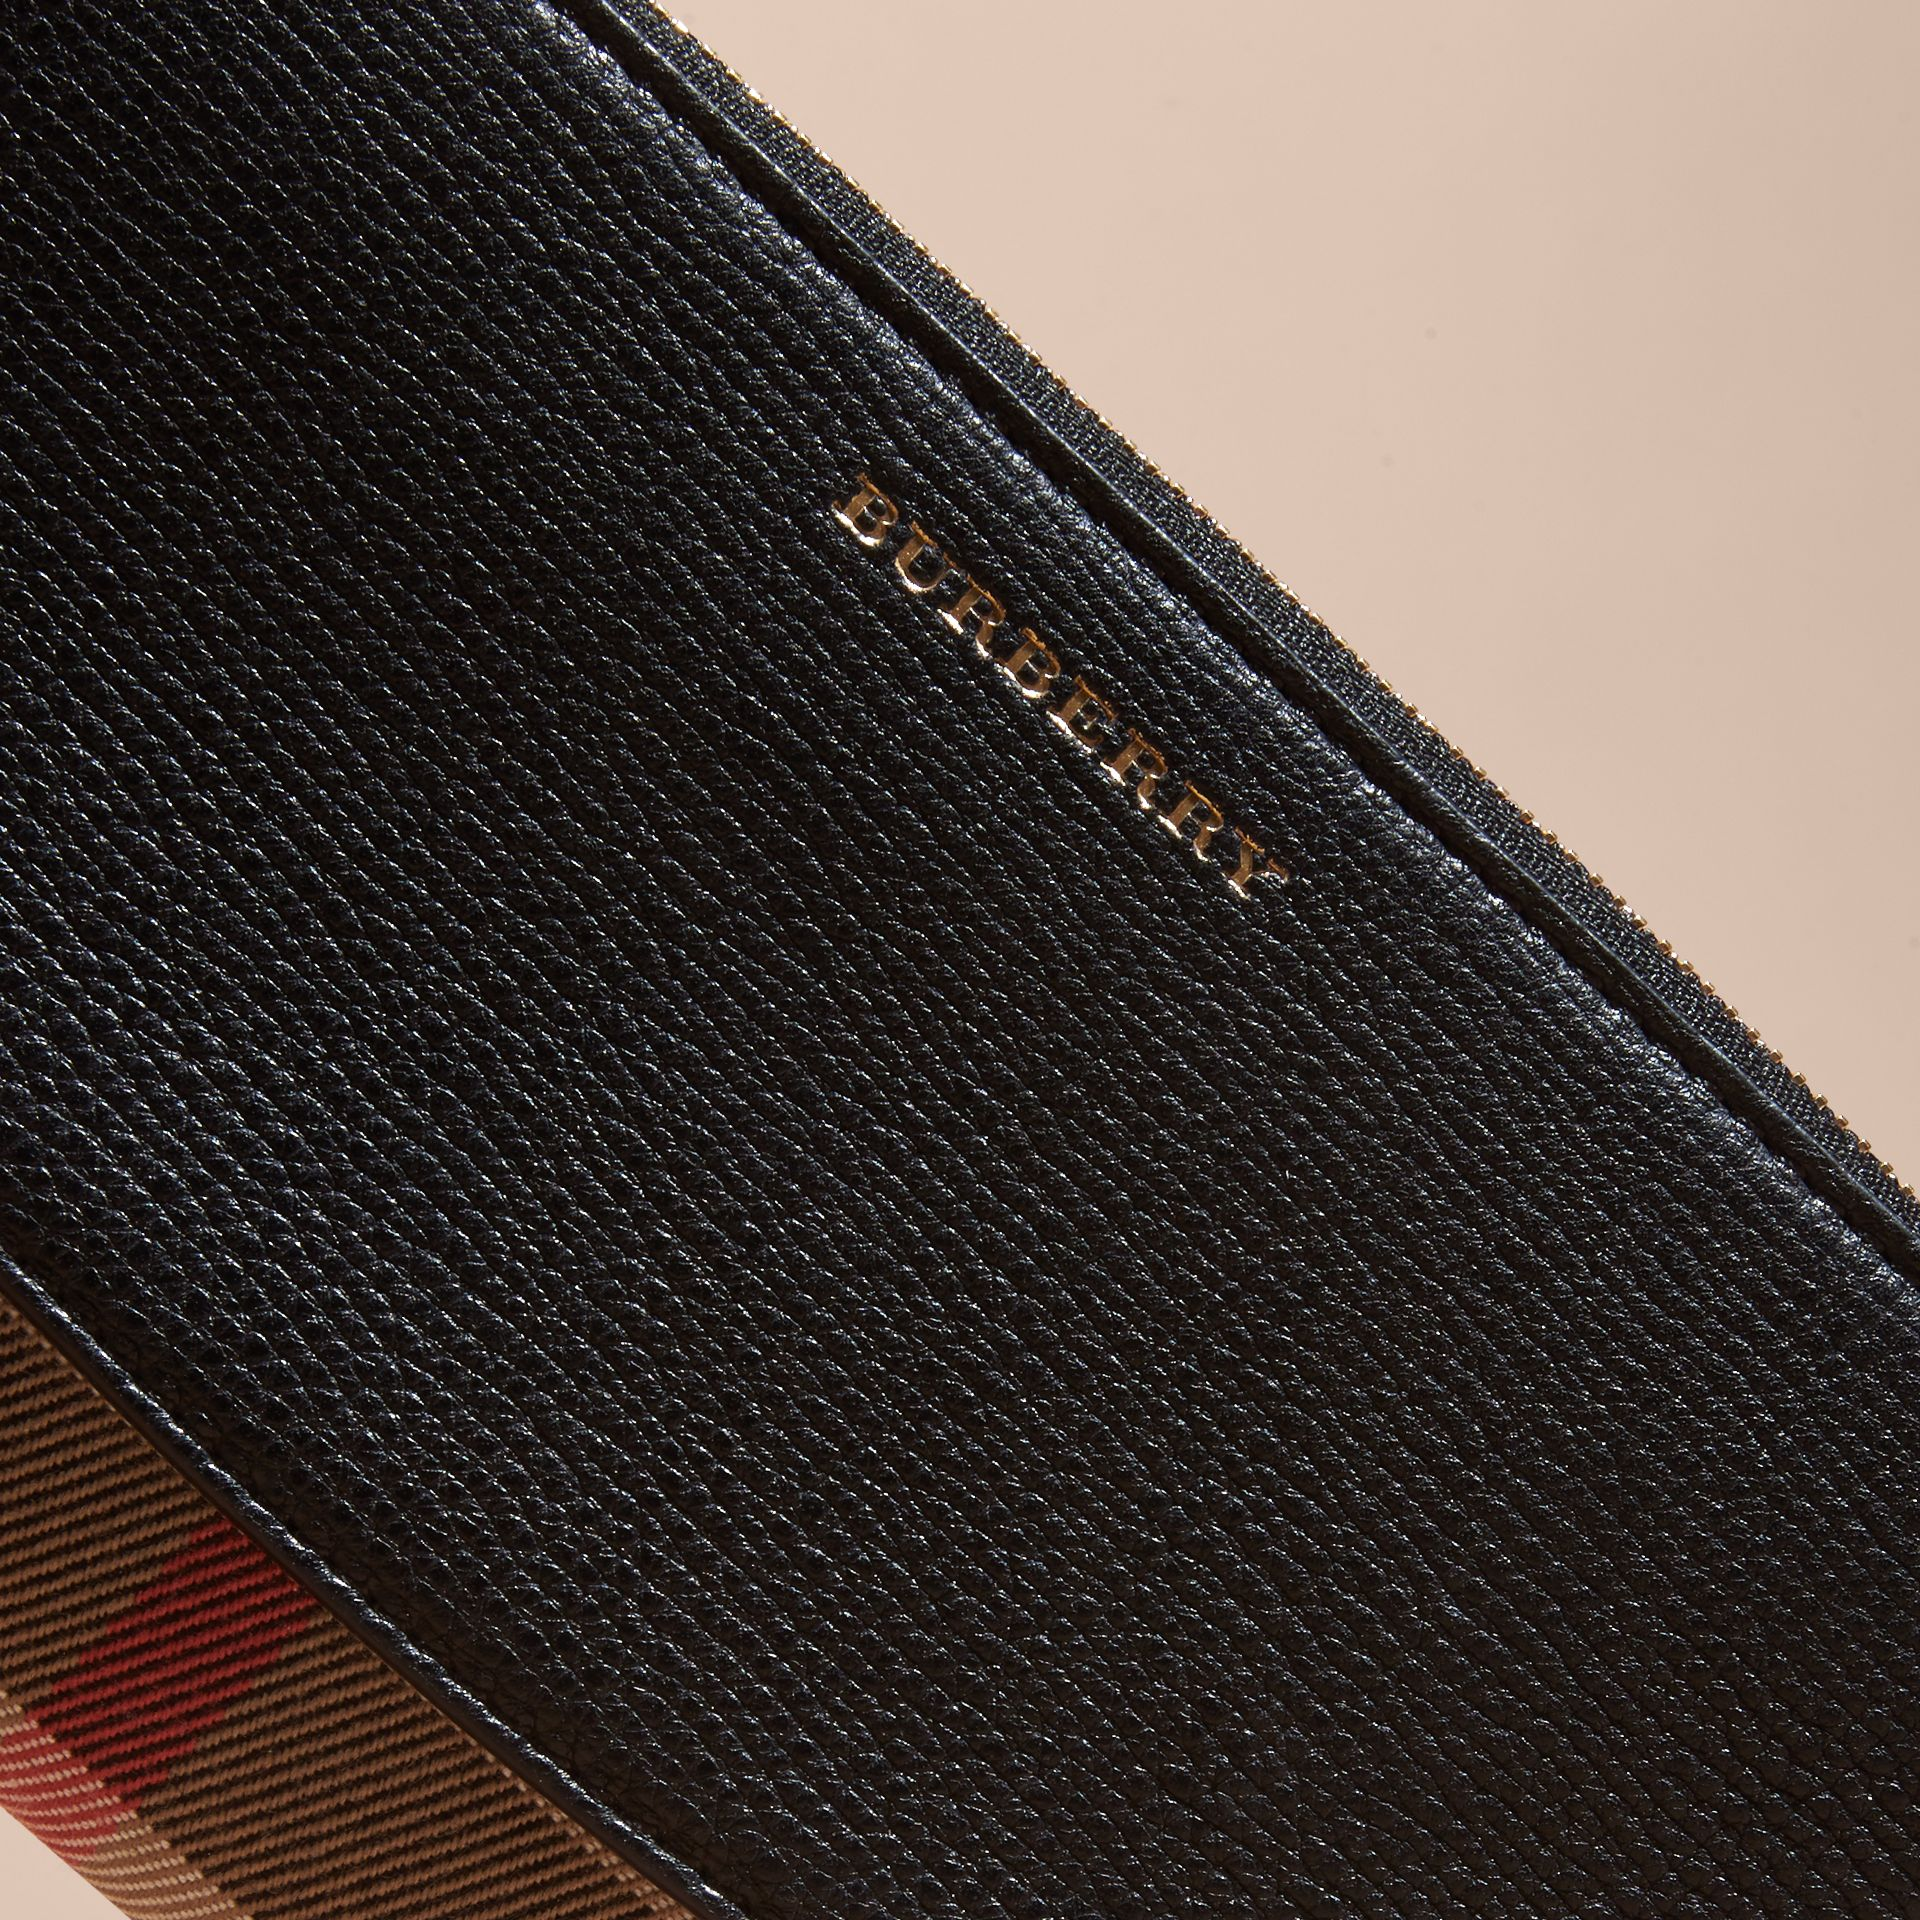 House Check and Leather Ziparound Wallet in Black - Women | Burberry Canada - gallery image 4